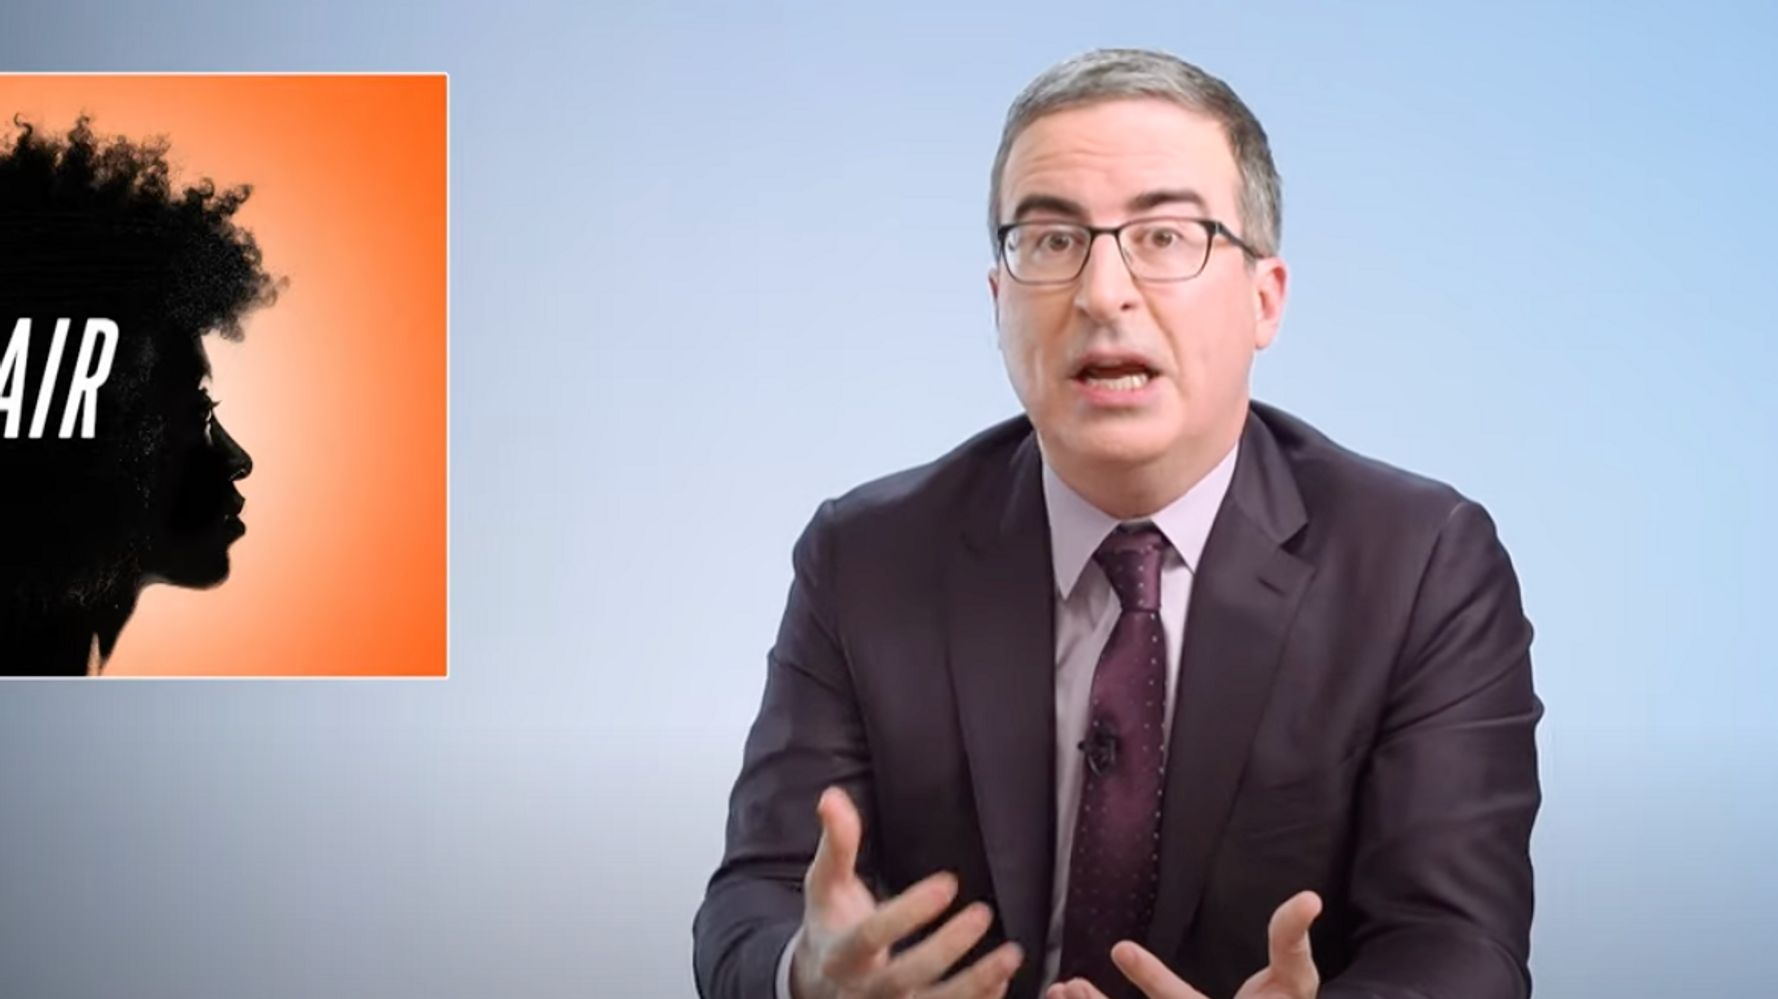 John Oliver: Hey, White People, Leave Black Hair Alone